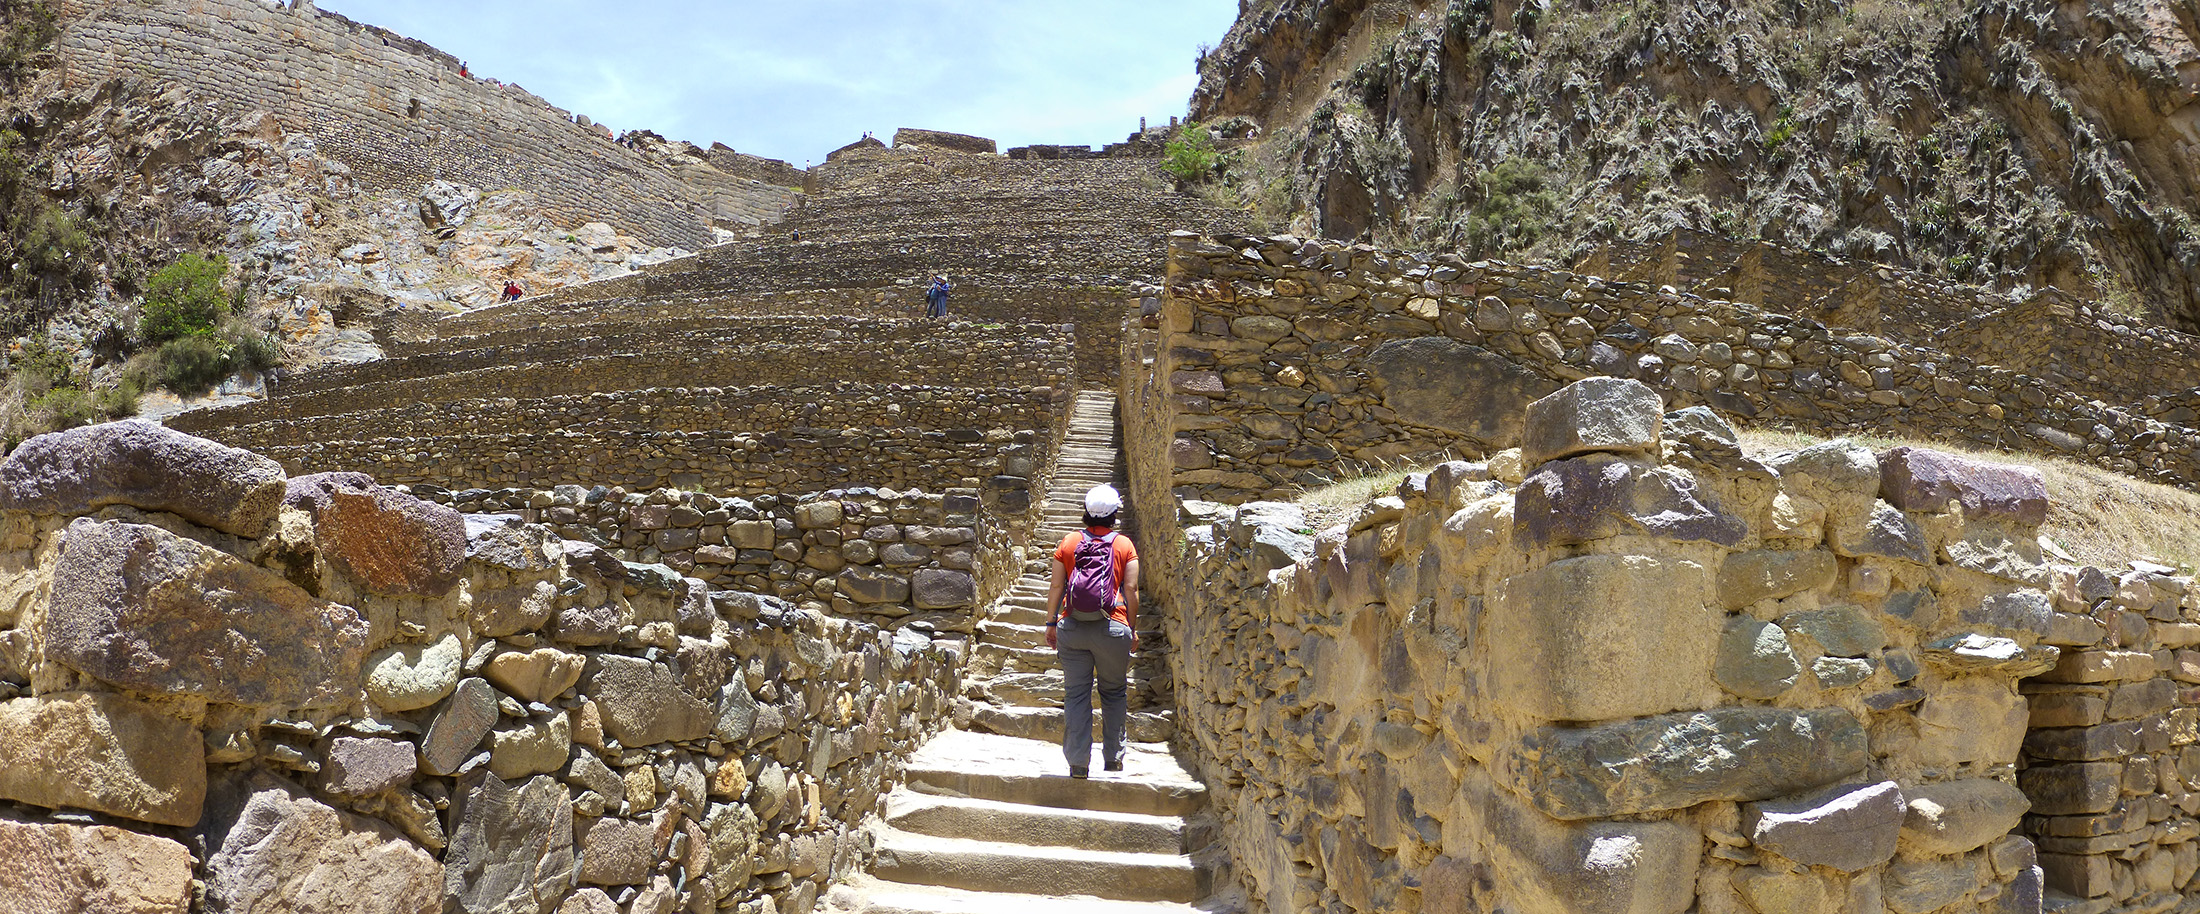 Katie climbing the mighty steps of Ollantaytambo ruins.